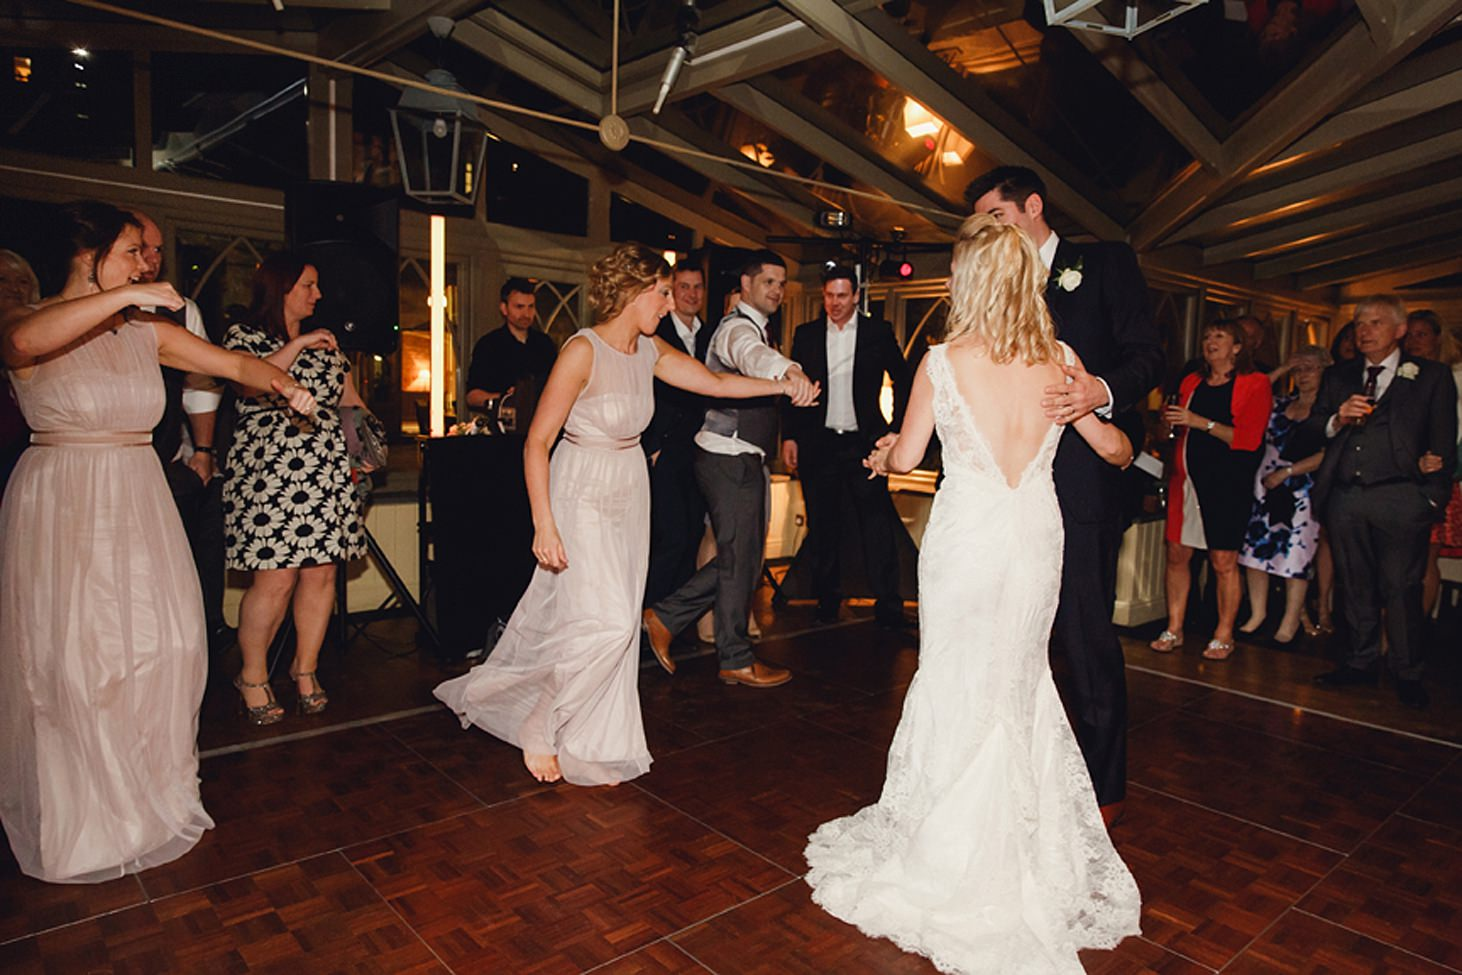 cotswolds wedding bridal party dancing